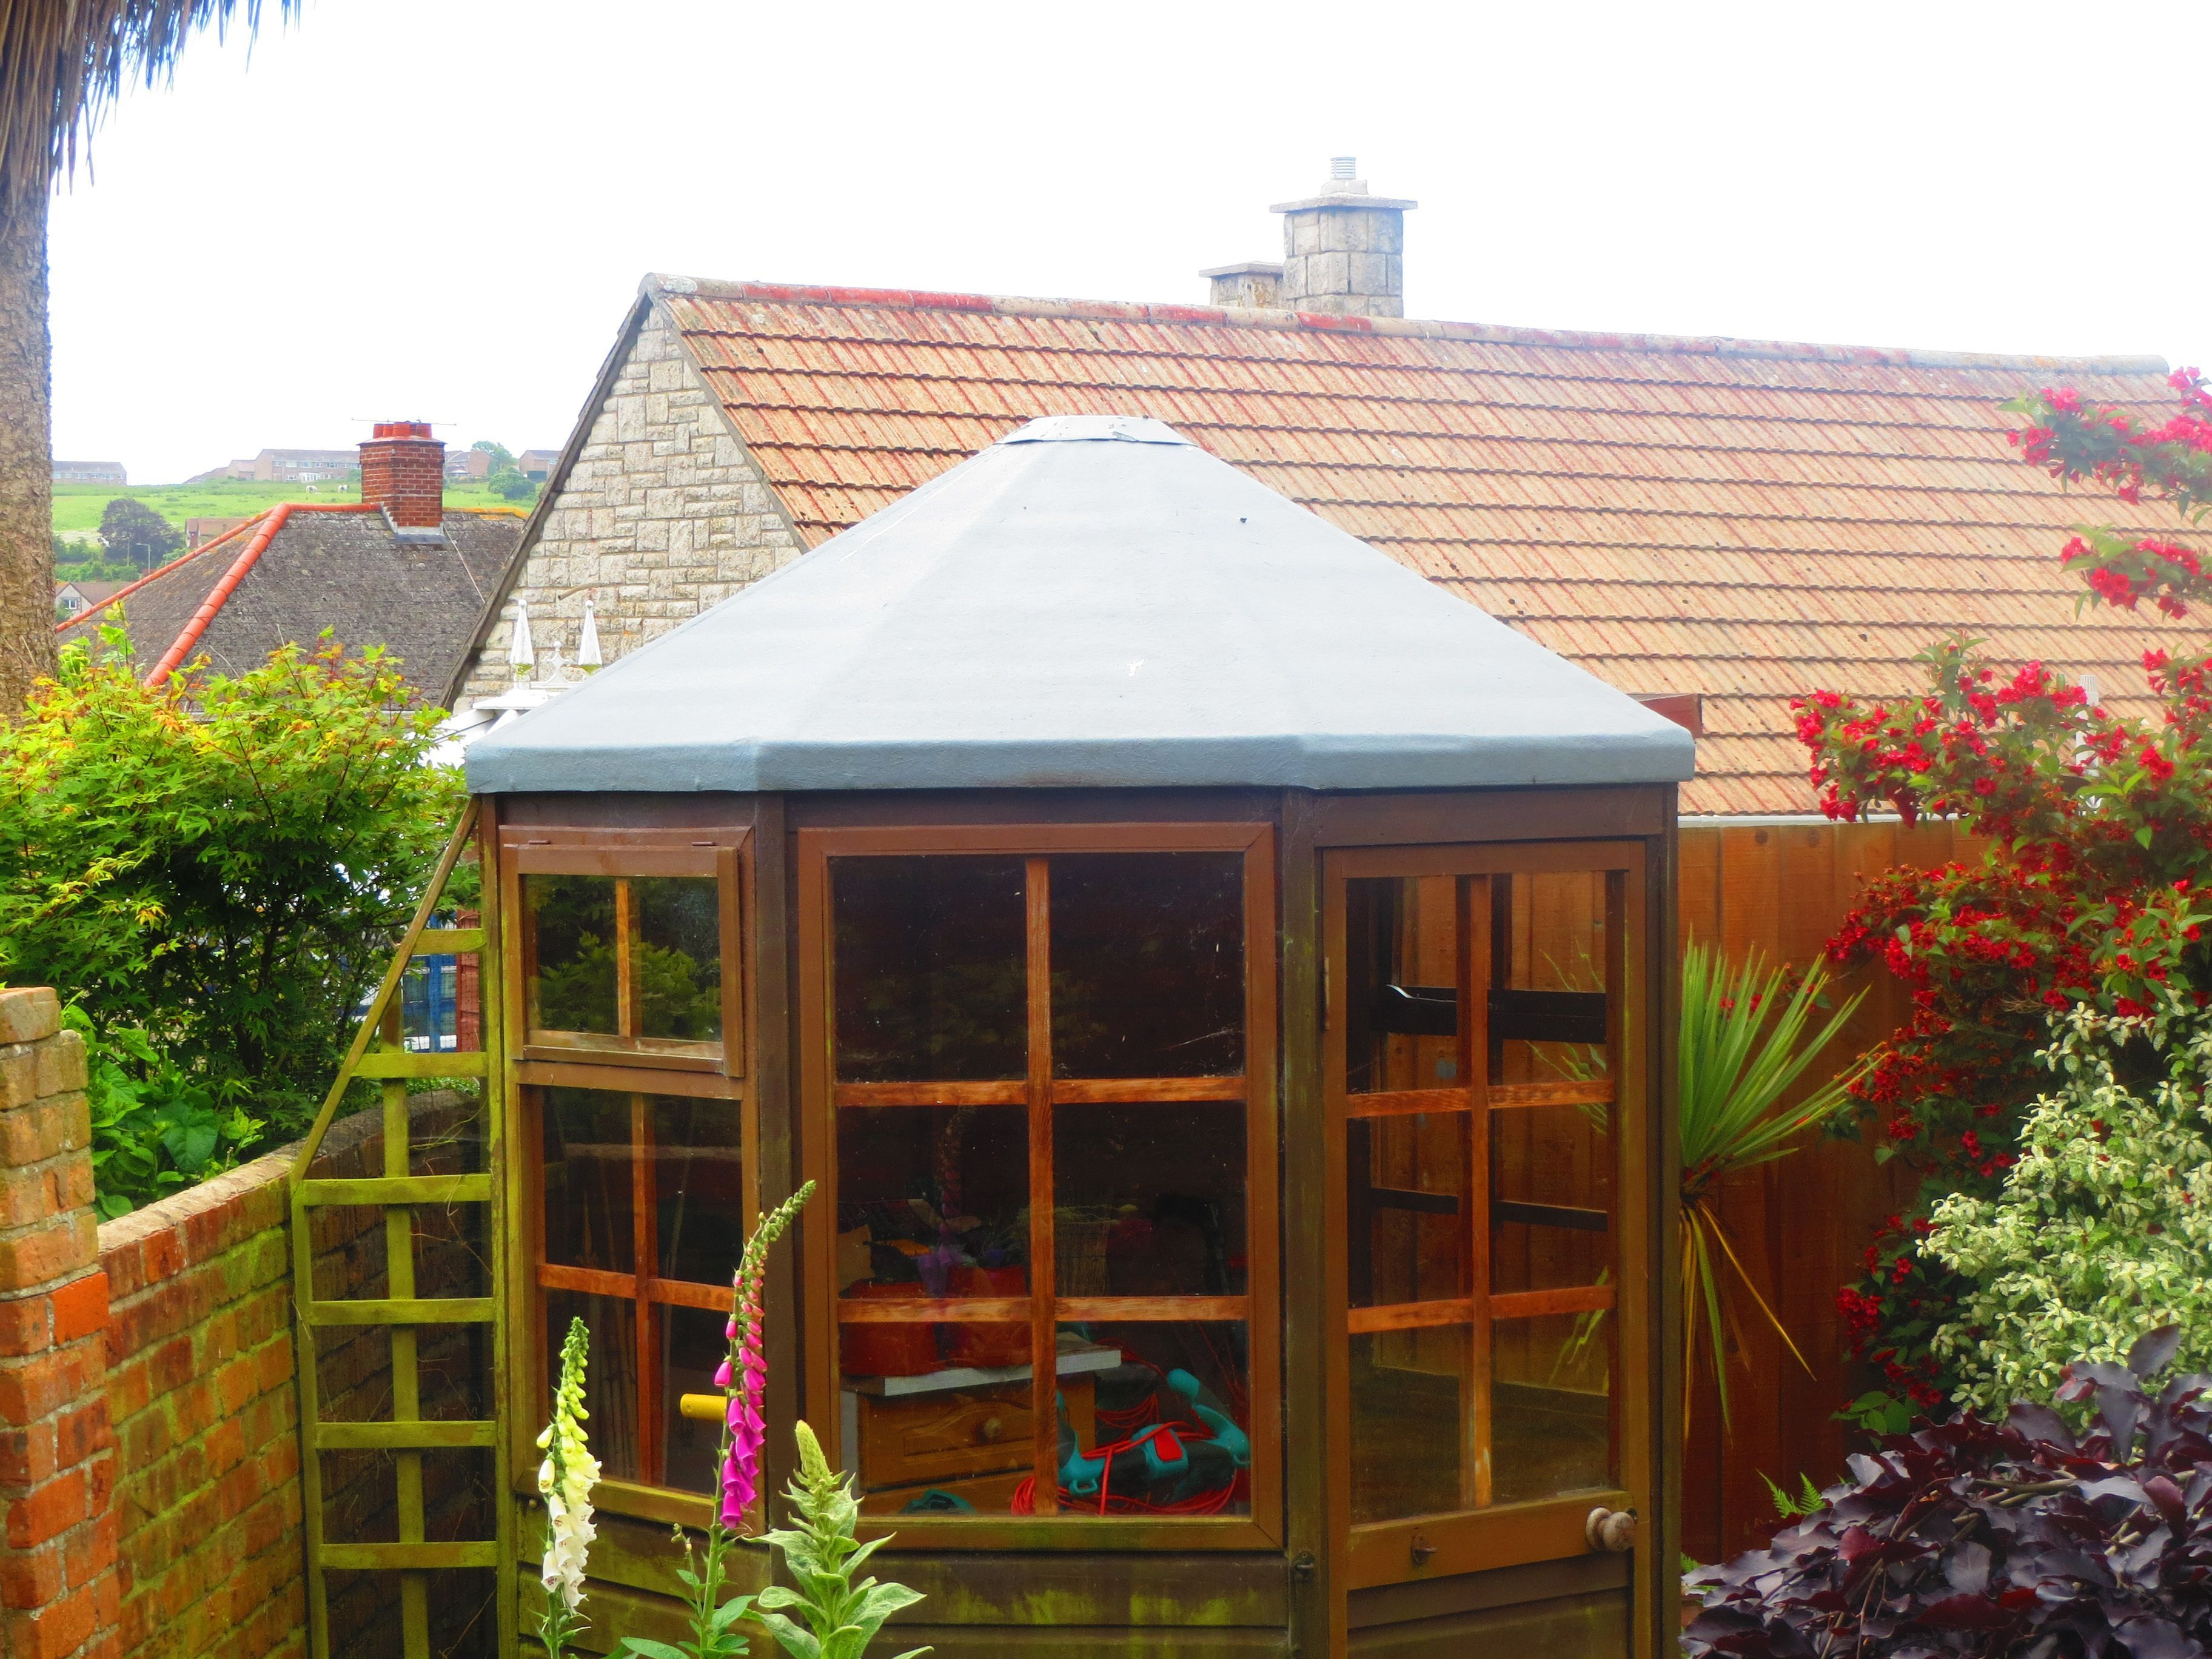 Grp fibre glass roof shed roof roofingdesign roofingideasexterior